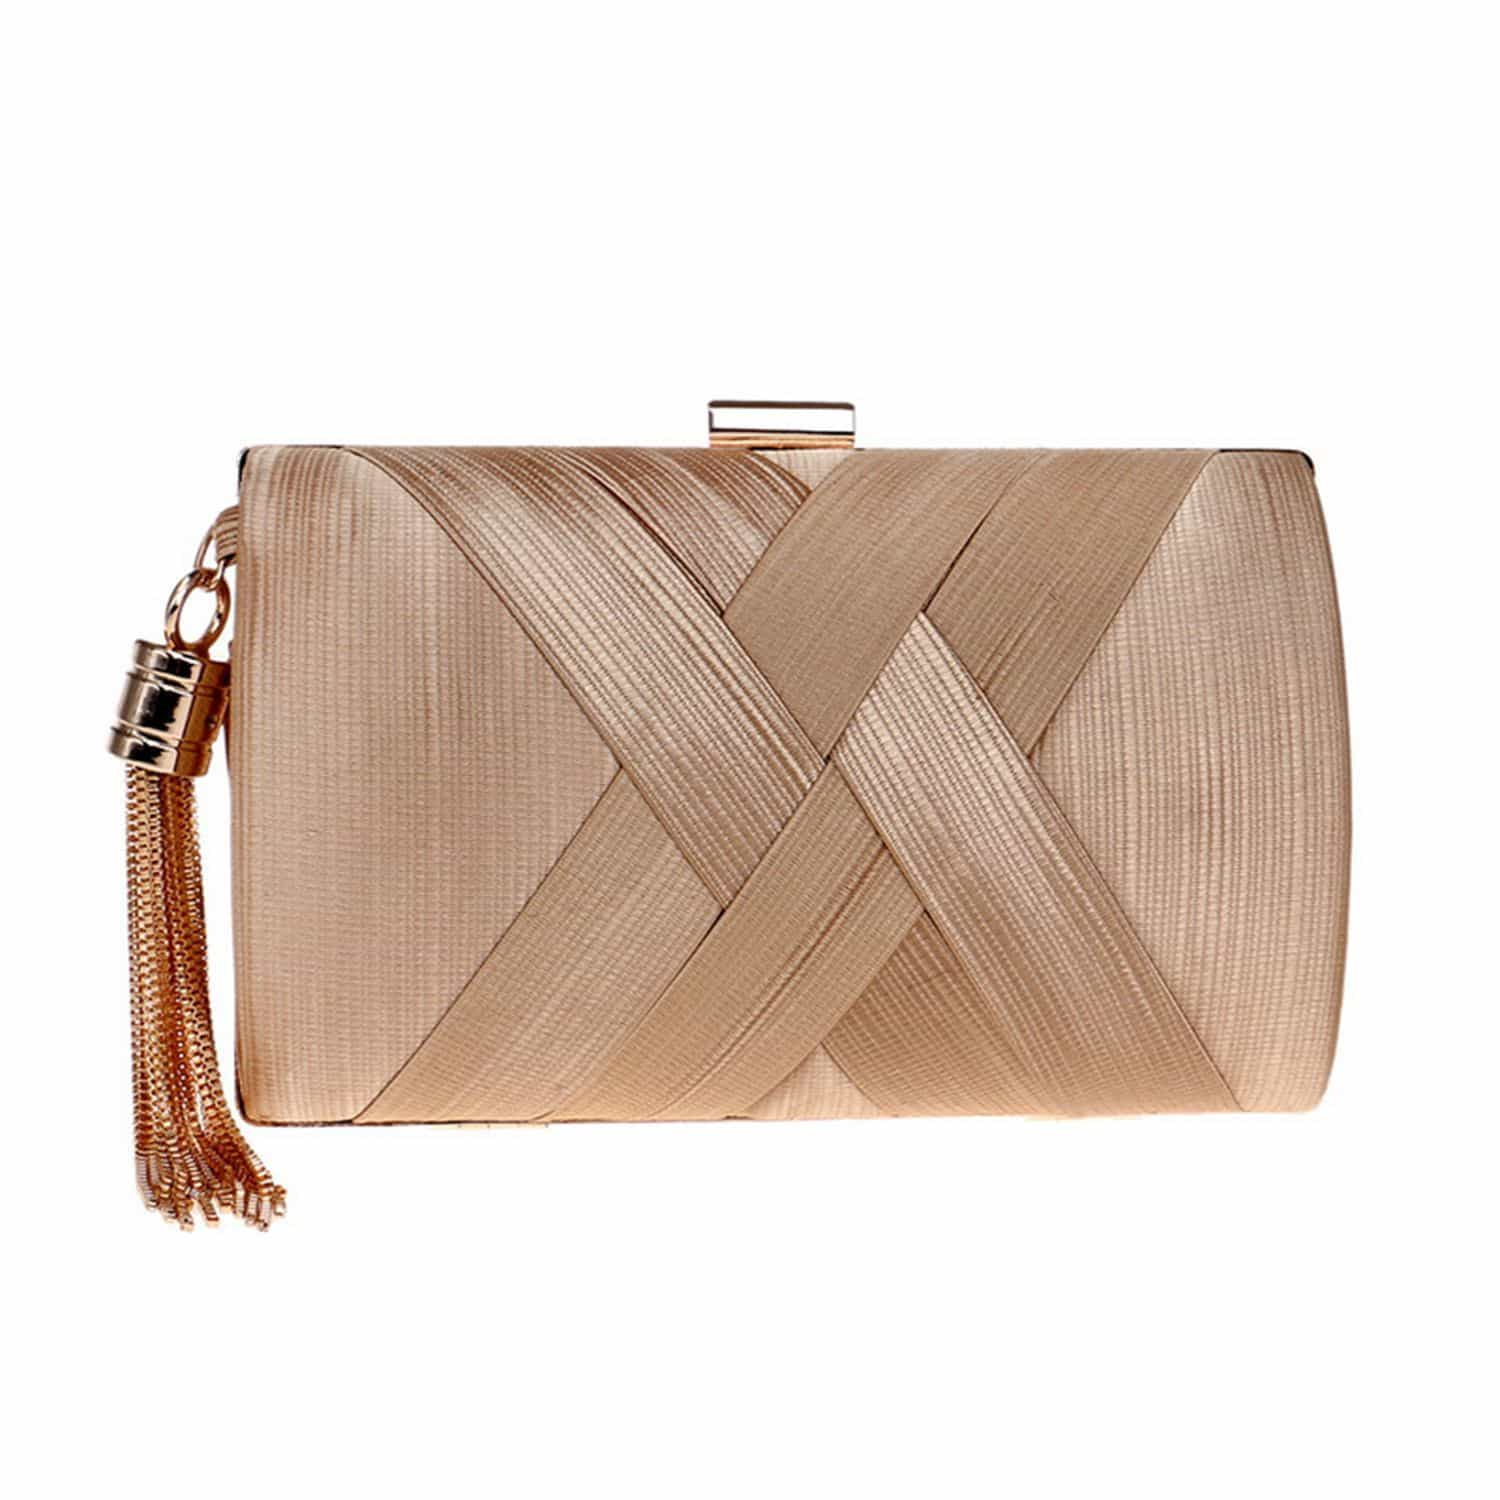 Tassel Fashion Ladies Clutch Bag, [variant_title], [option1], [option2], [option3] - anythinganyware